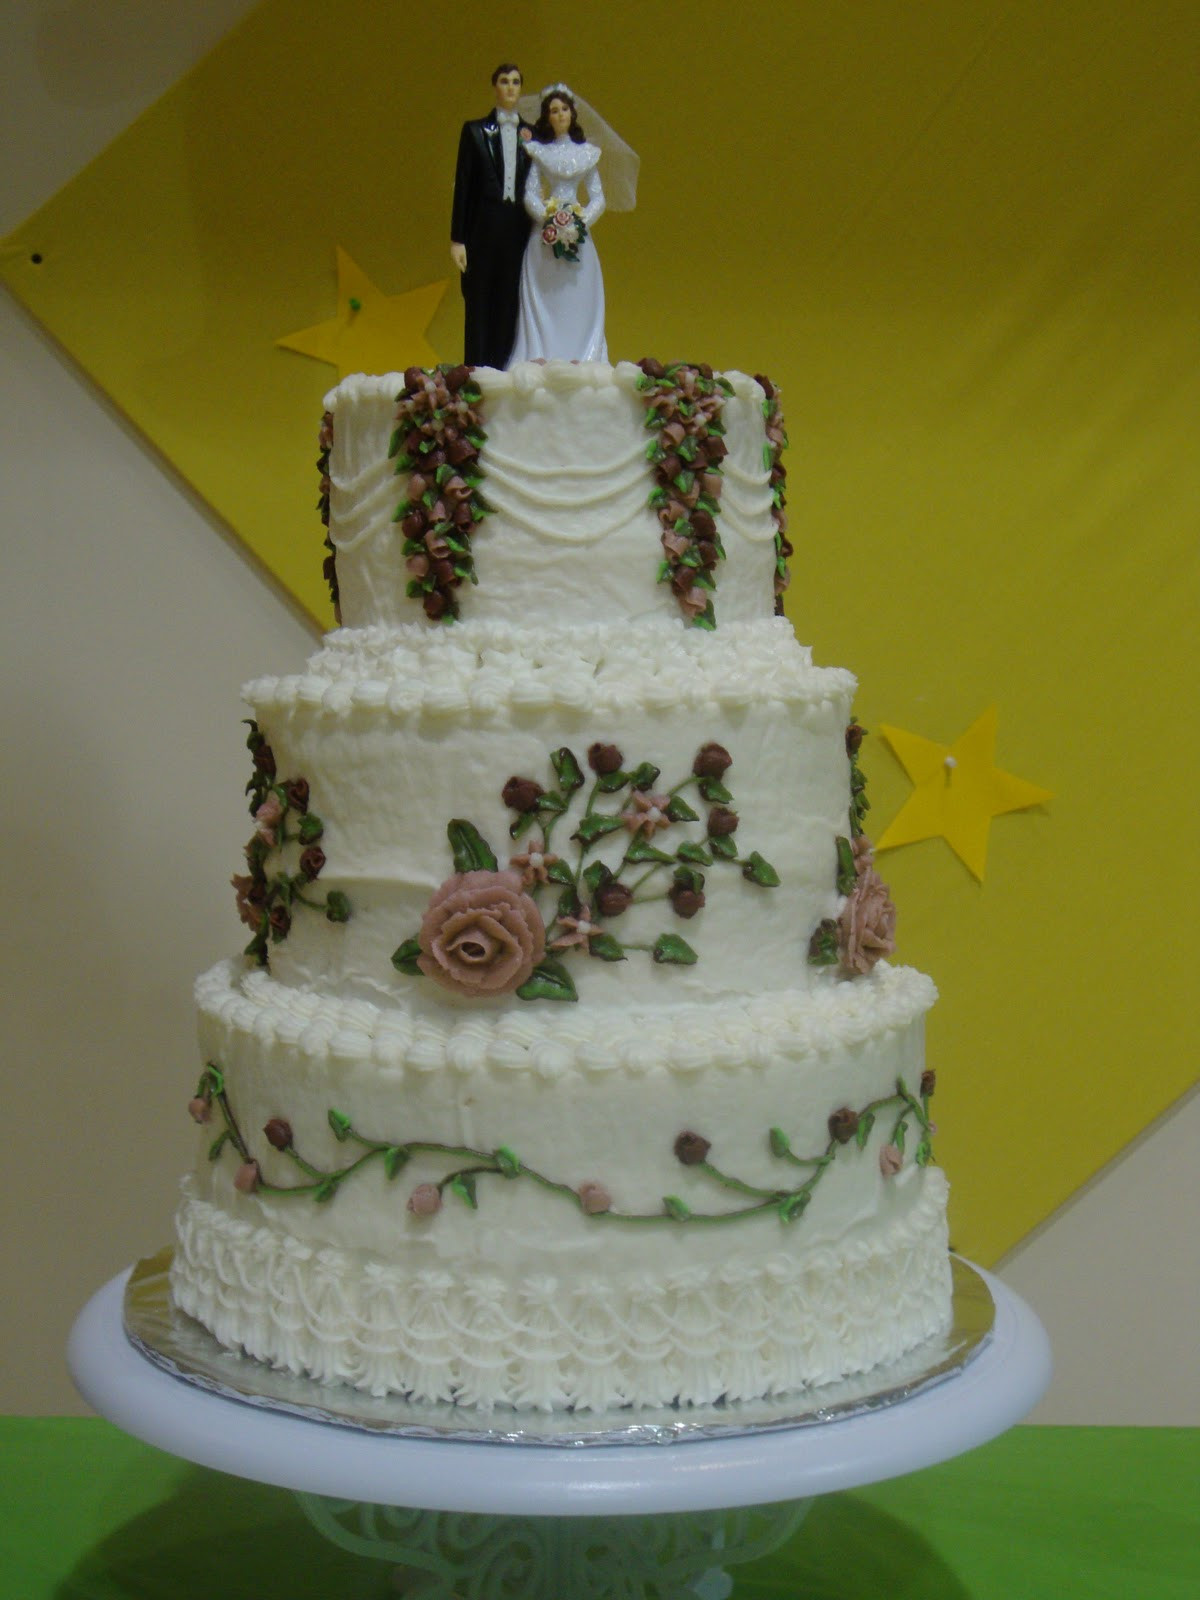 Old School Wedding Cakes  Mega Pretty Cakes Old School Wedding Cake with Groom s Cake